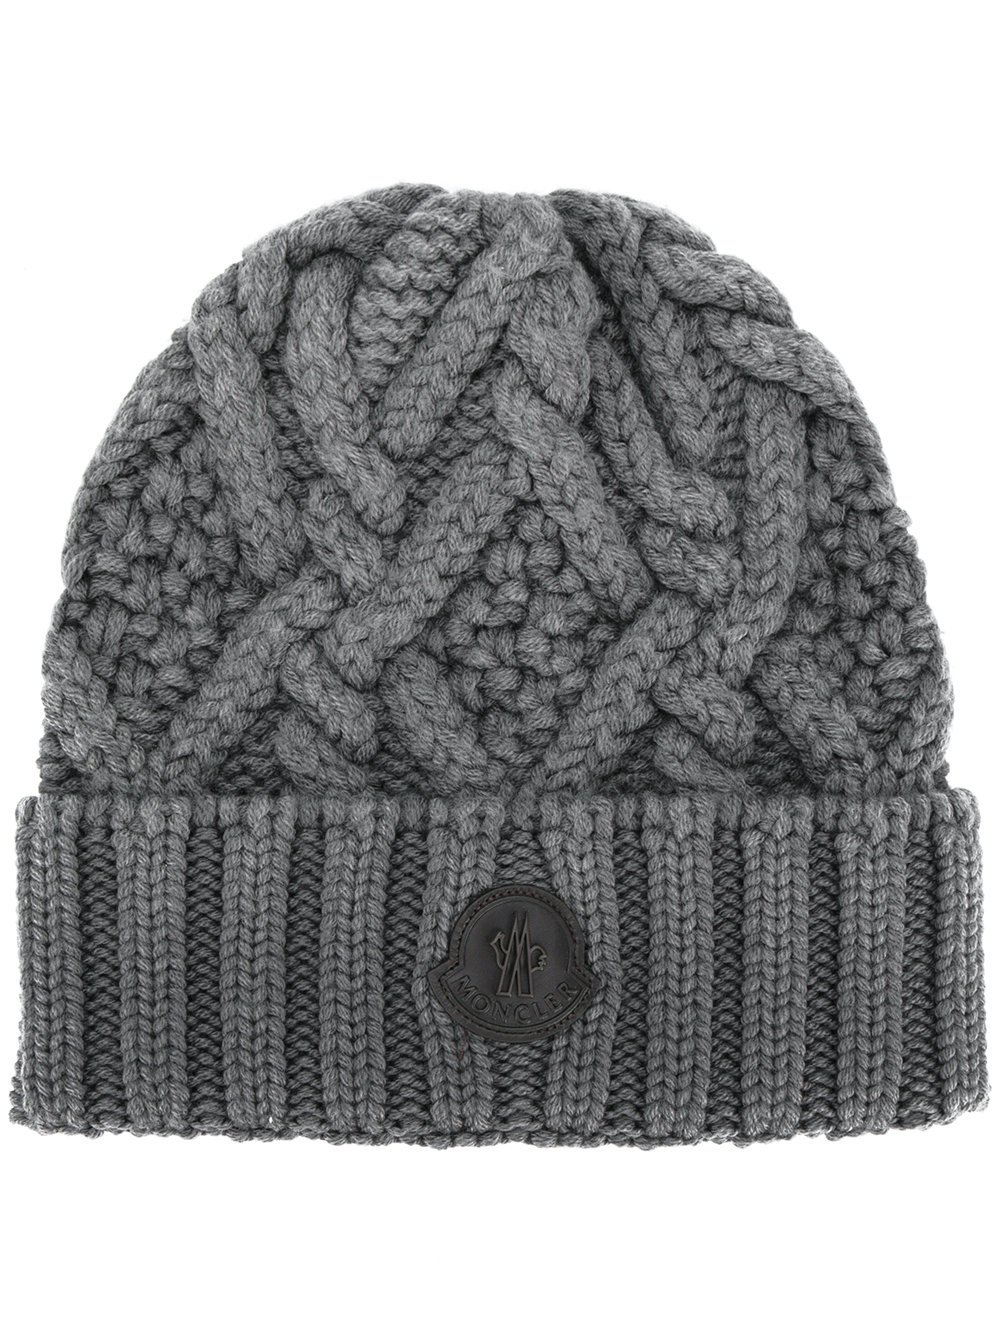 Moncler Knitted Beanie Cap Hat